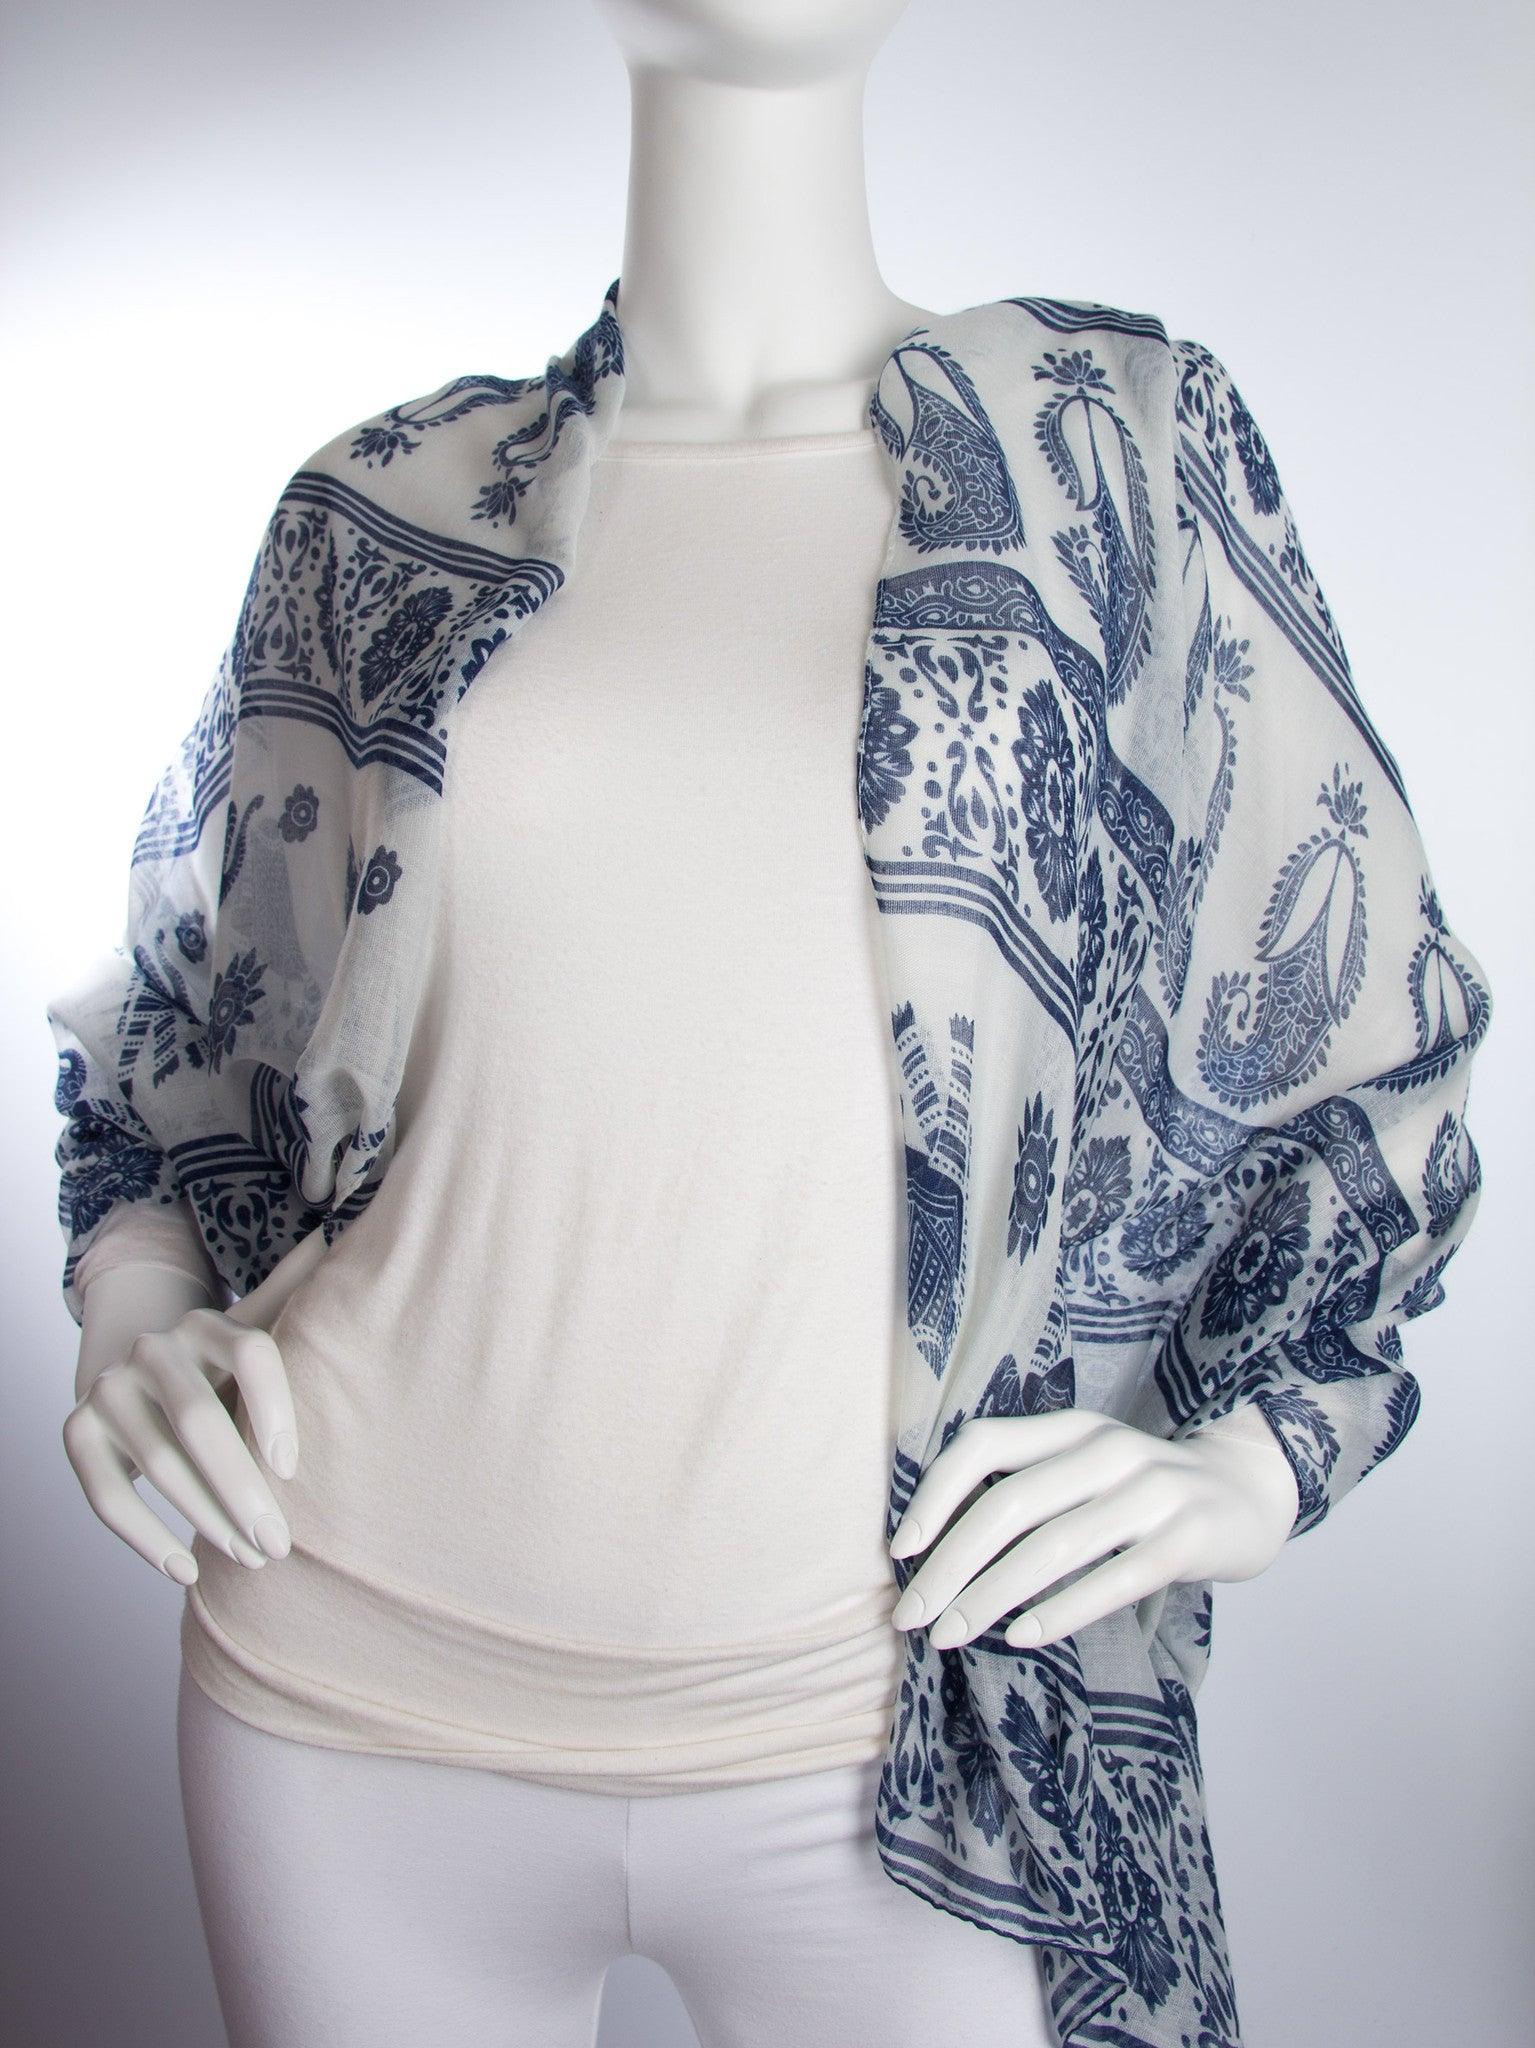 Scarves - Gaja Shawl, Paisley Indian Elephant Print Scarf, Shawl, Beach Wrap -() Bohomonde  - 17